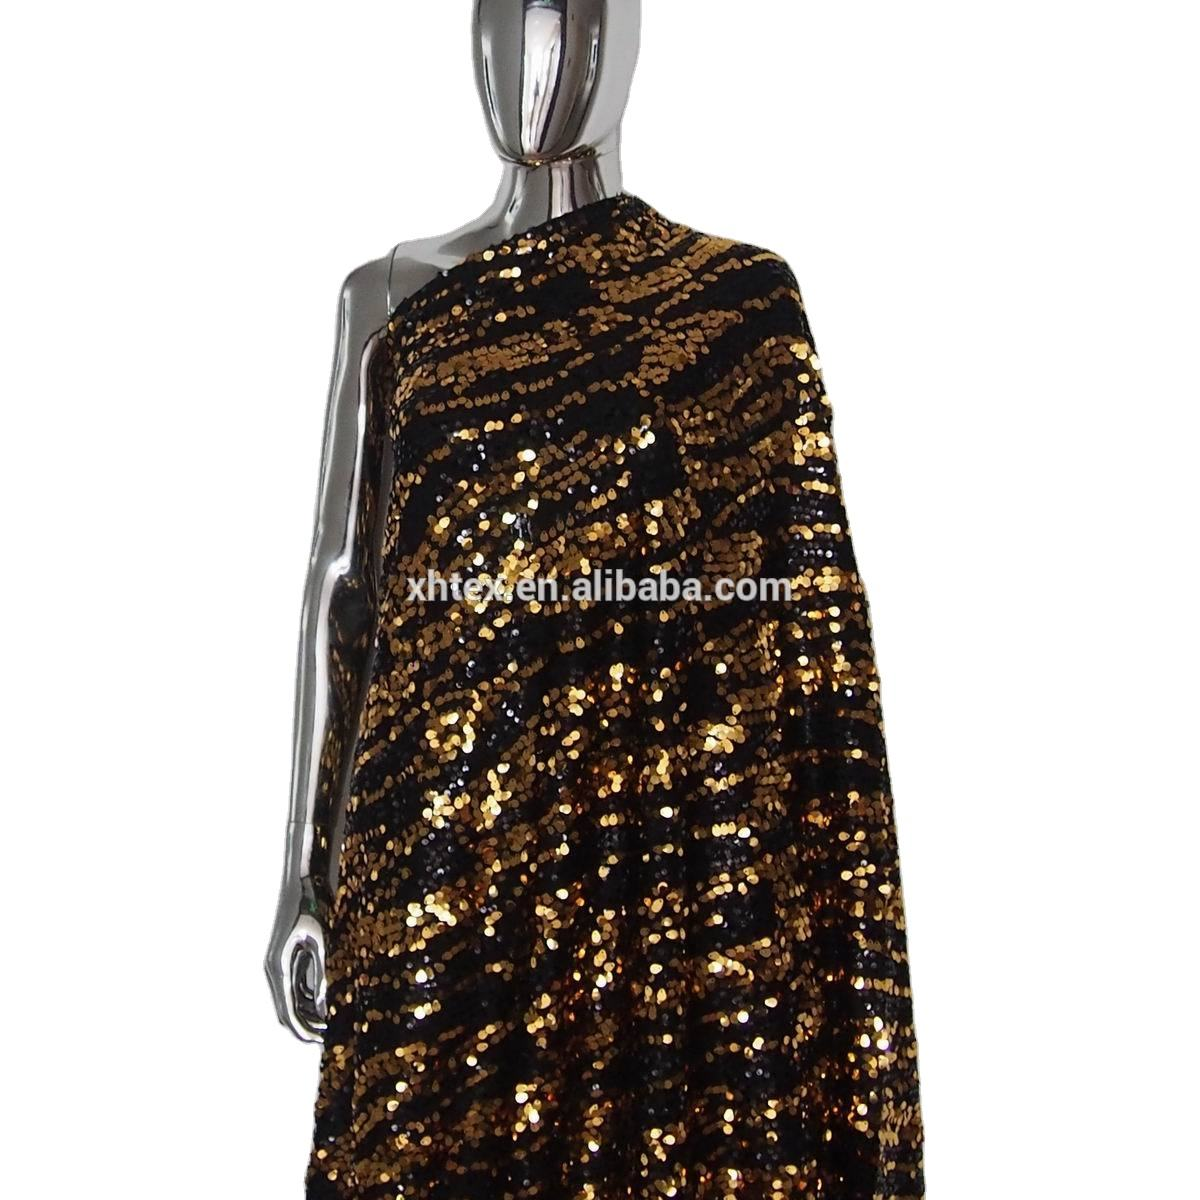 Ready Goods Special Oval Sequin Textile Sequin Embroidery On Mesh Fabric For Fashion Clothing